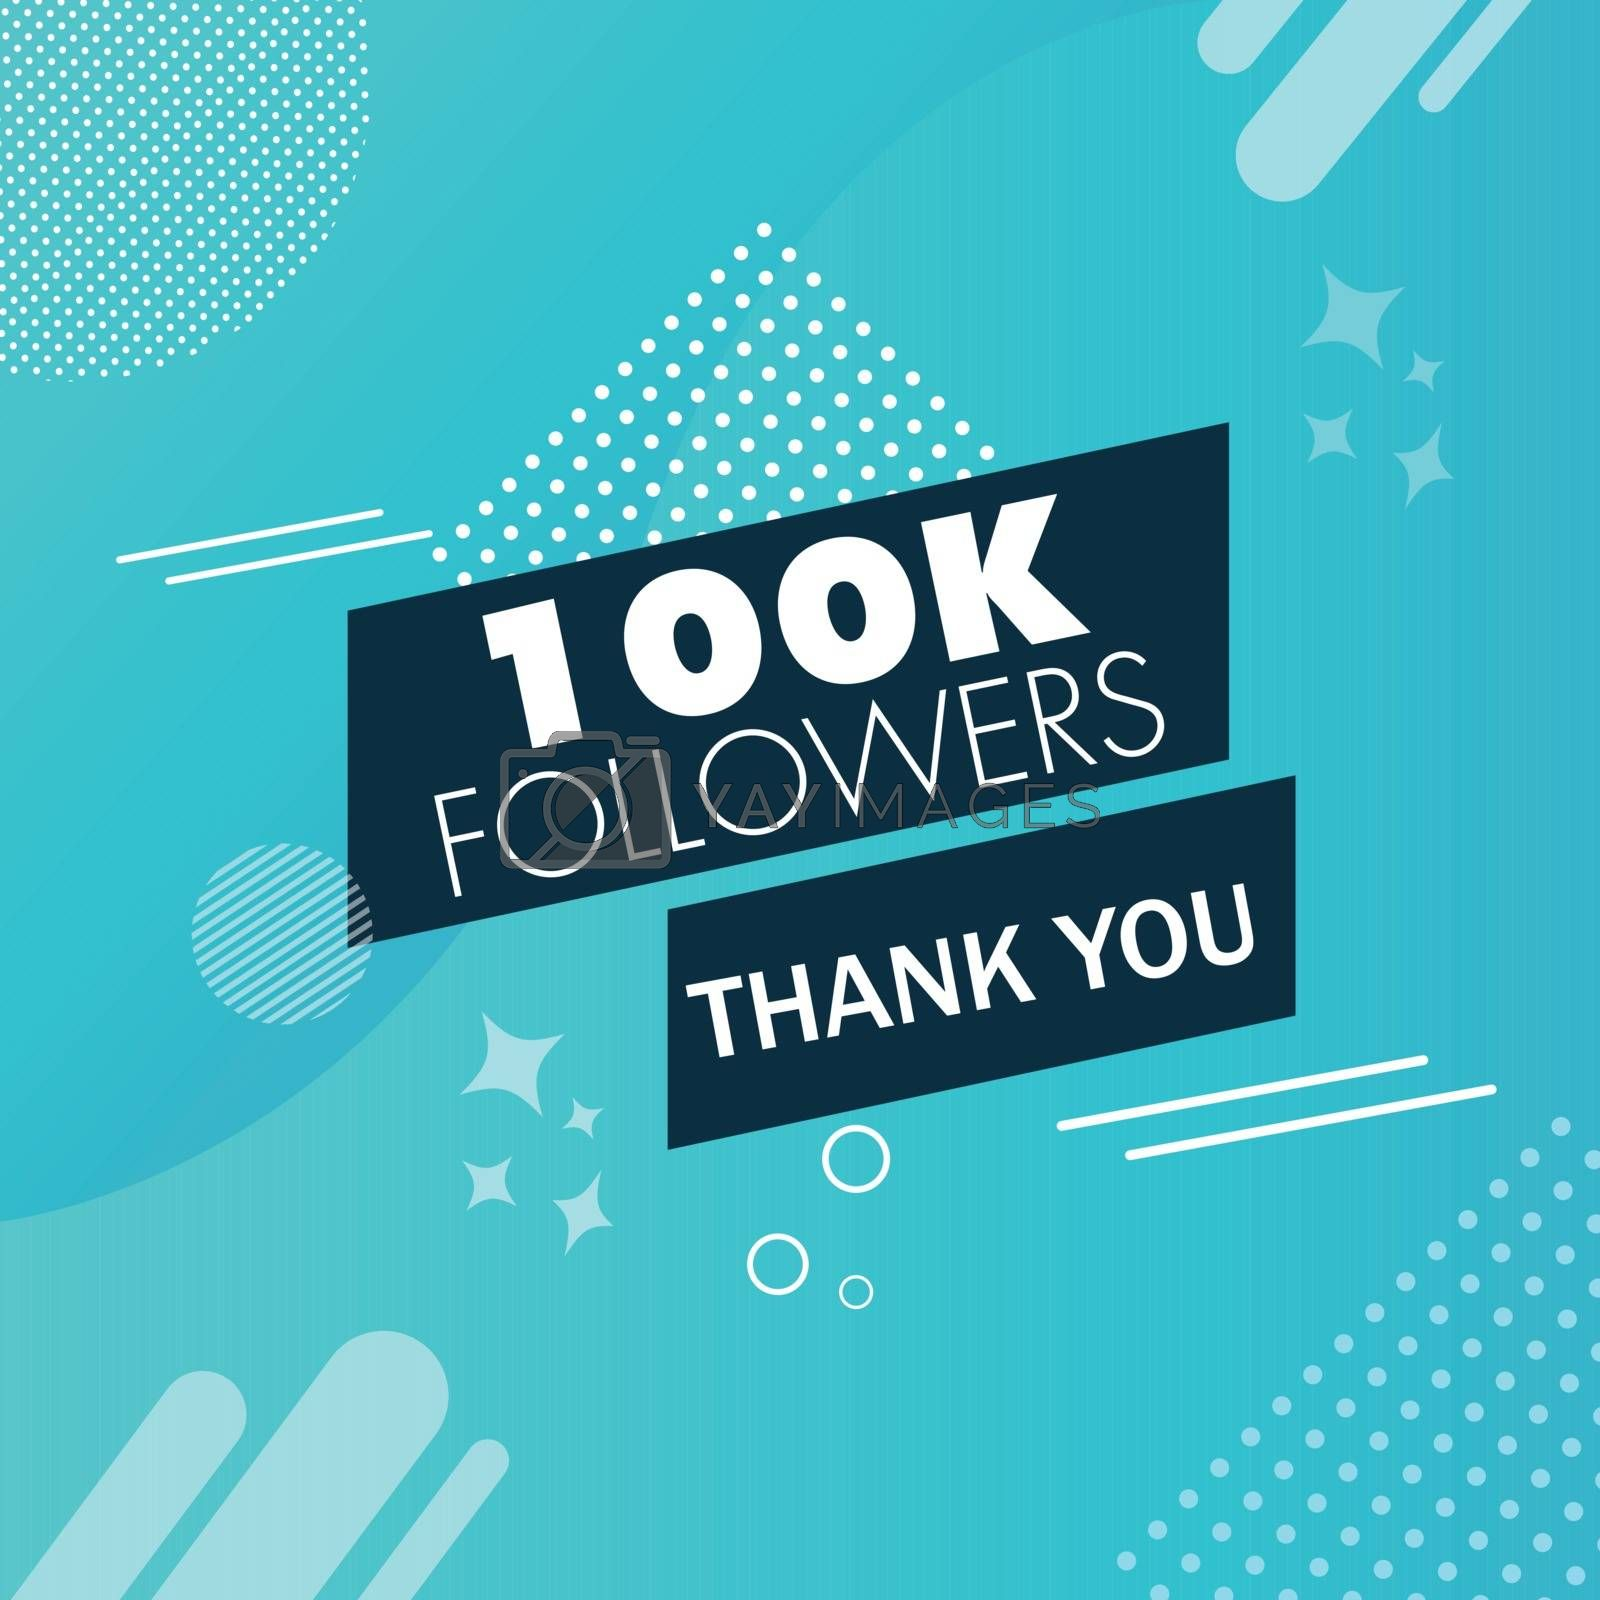 Thank you message for 100K followers on blue abstract background. Can be used as card design.